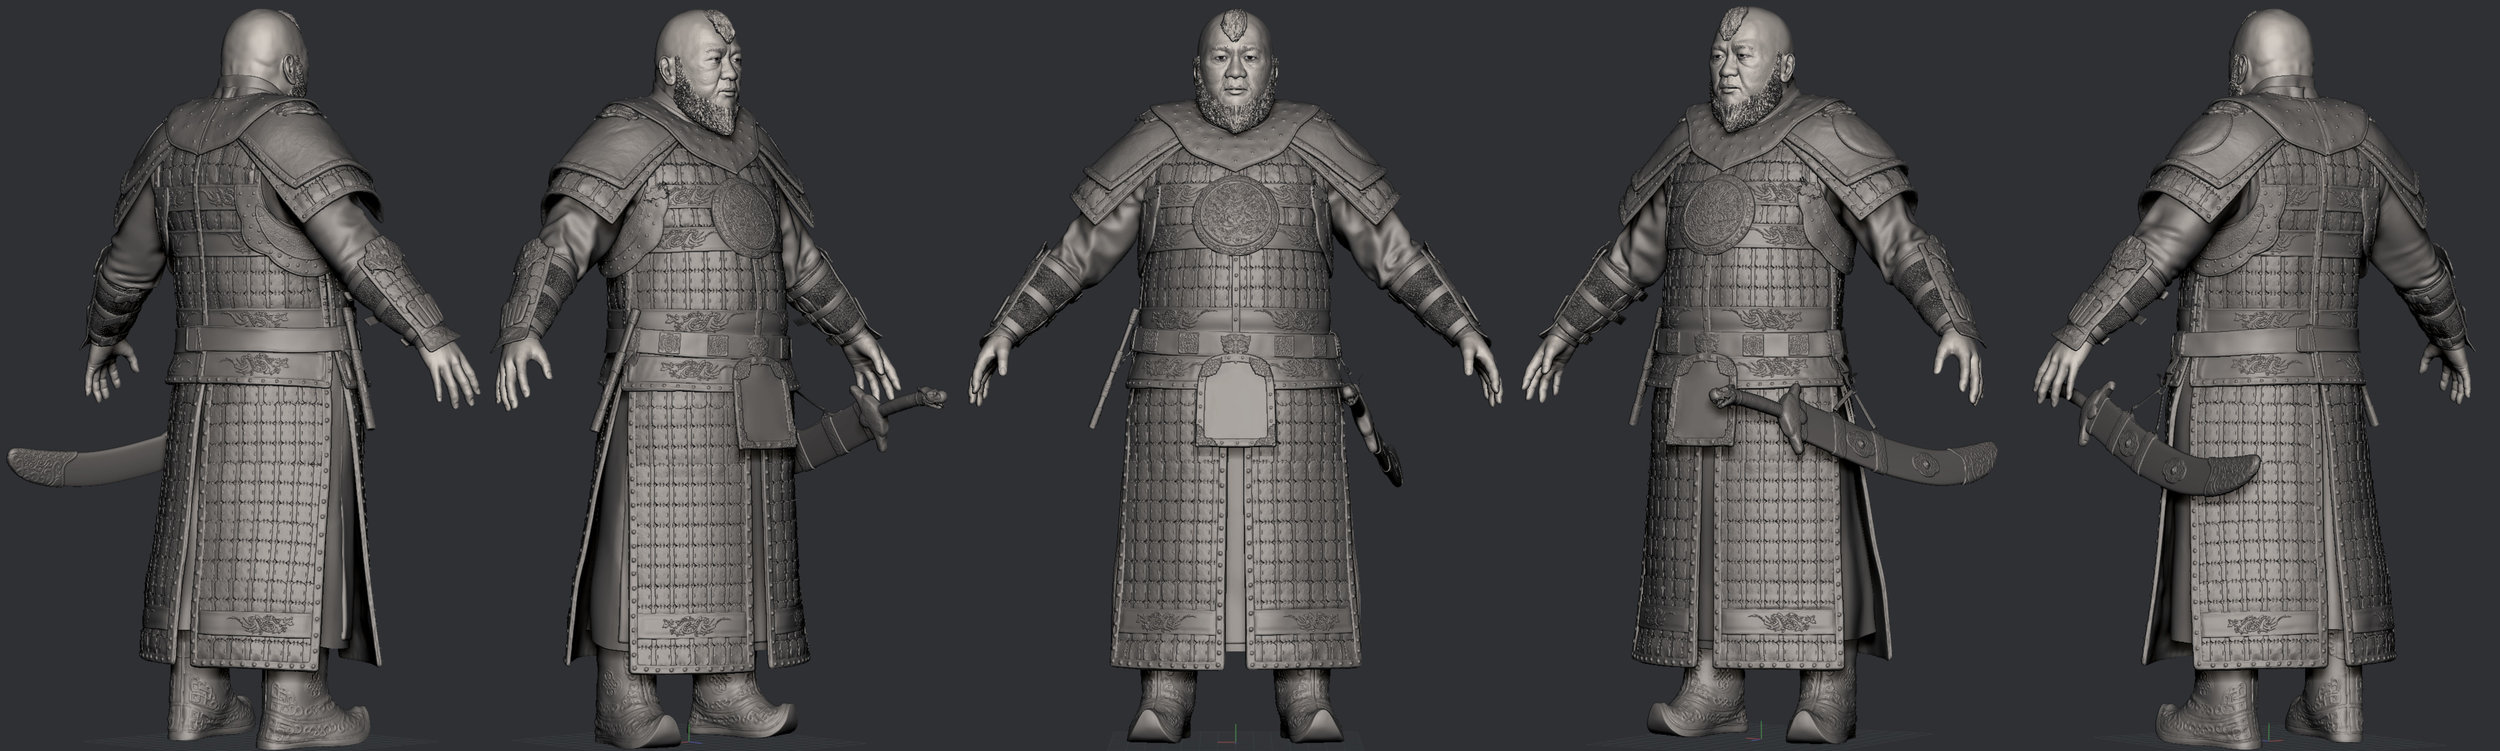 Great Khan 3D Model.jpg